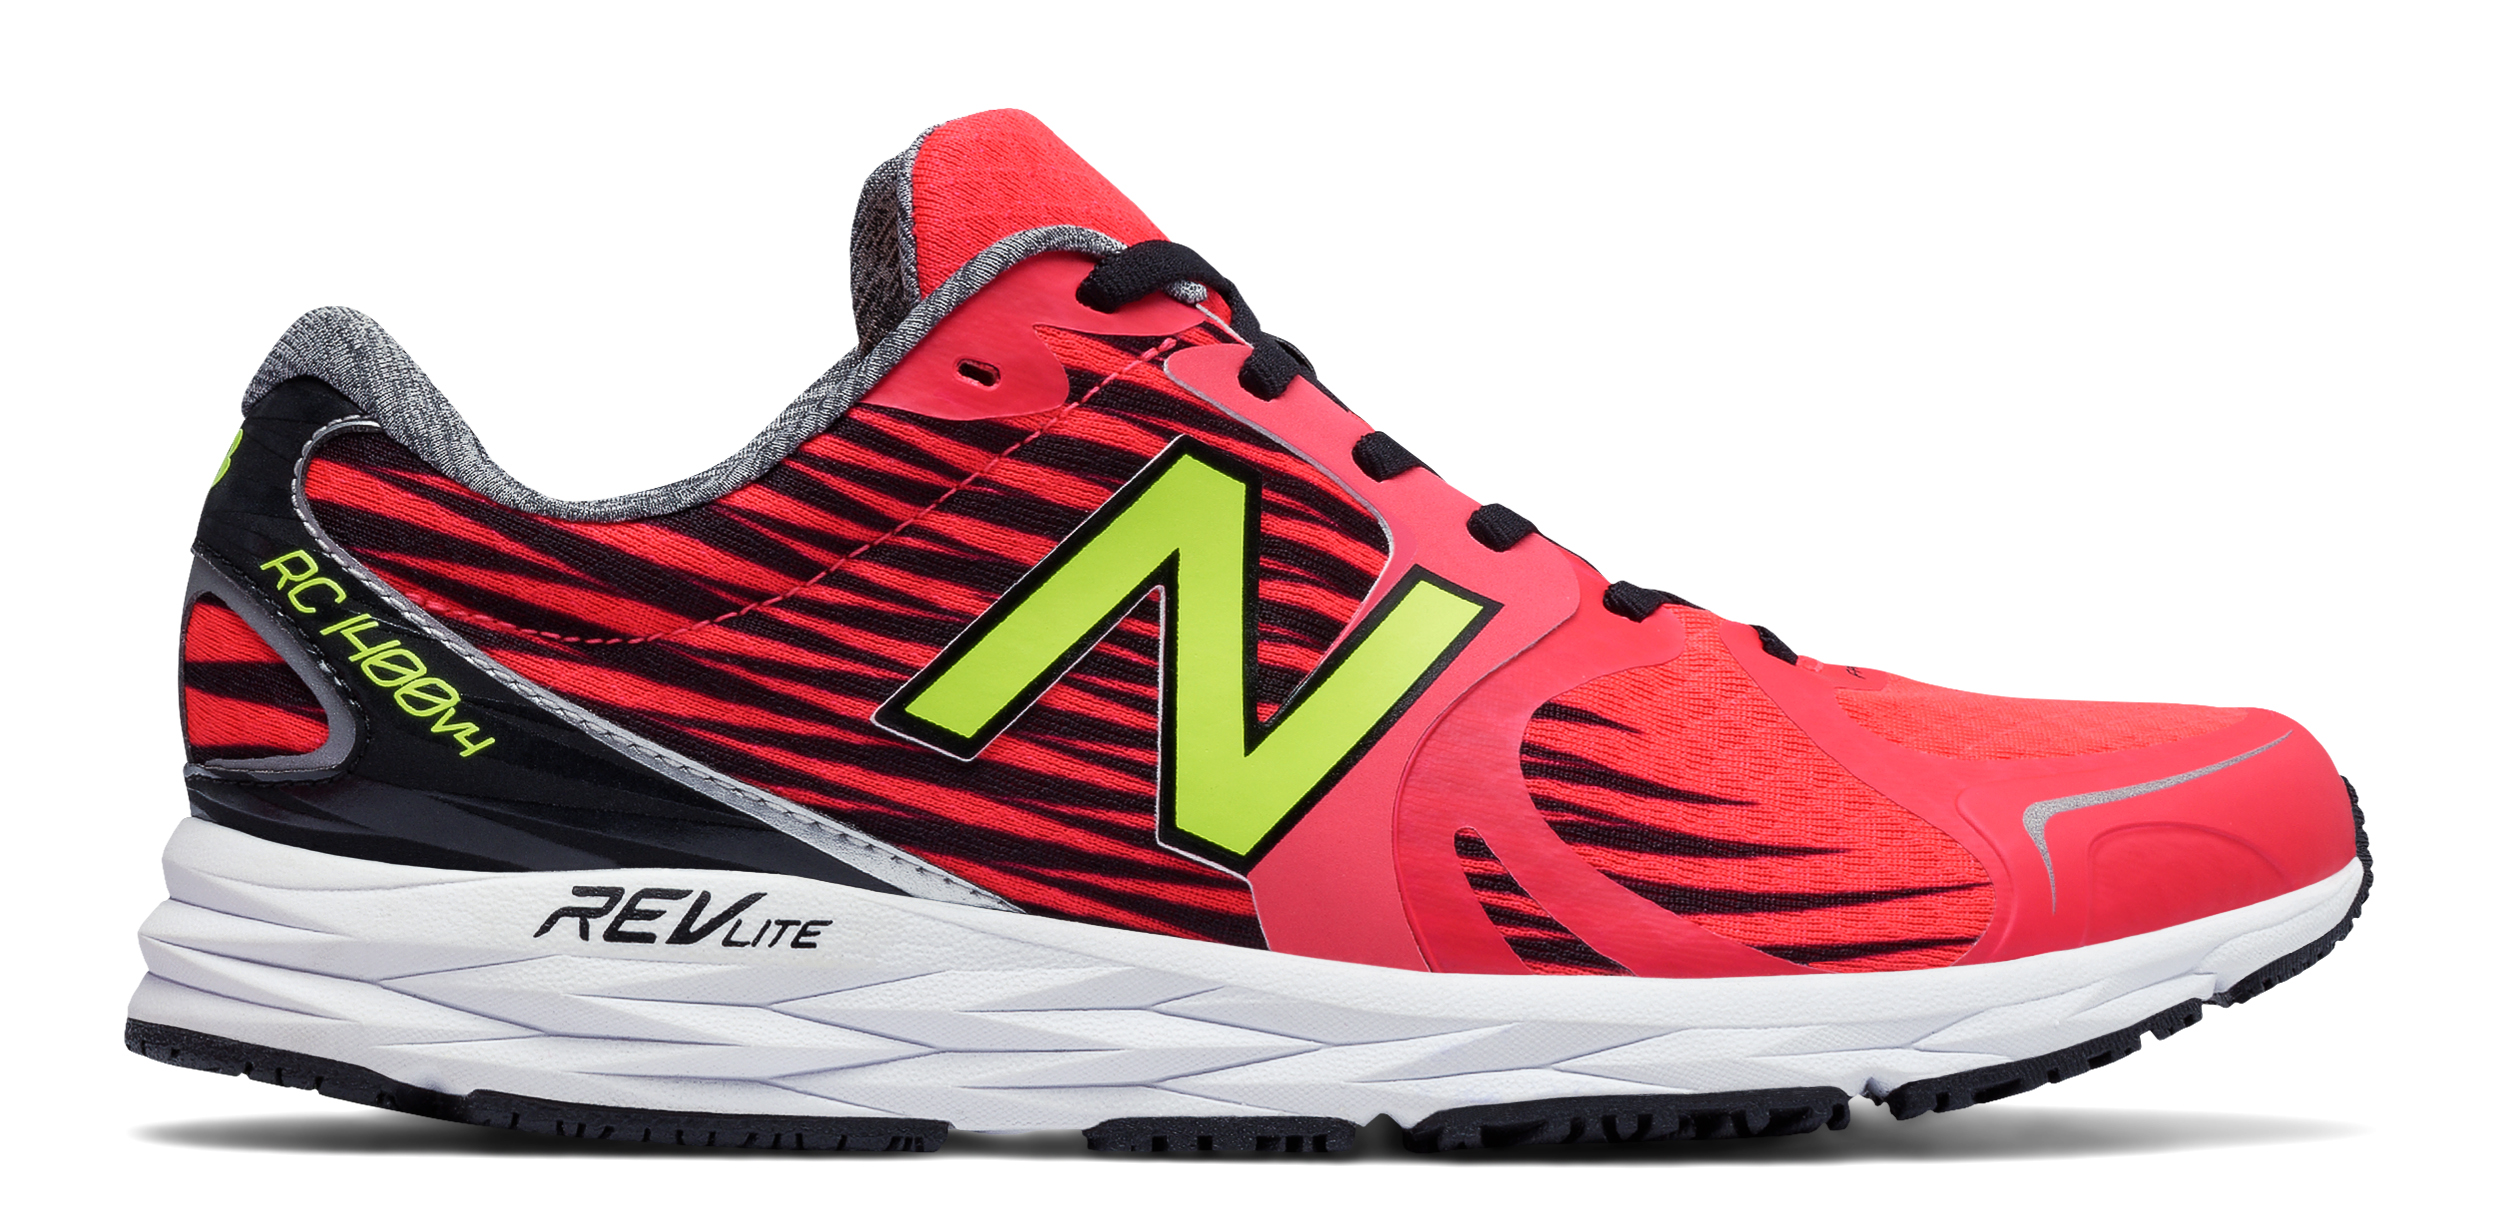 f06b7f70d76 New Balance RC1400v4 Road Running Shoes - Men's | MEC